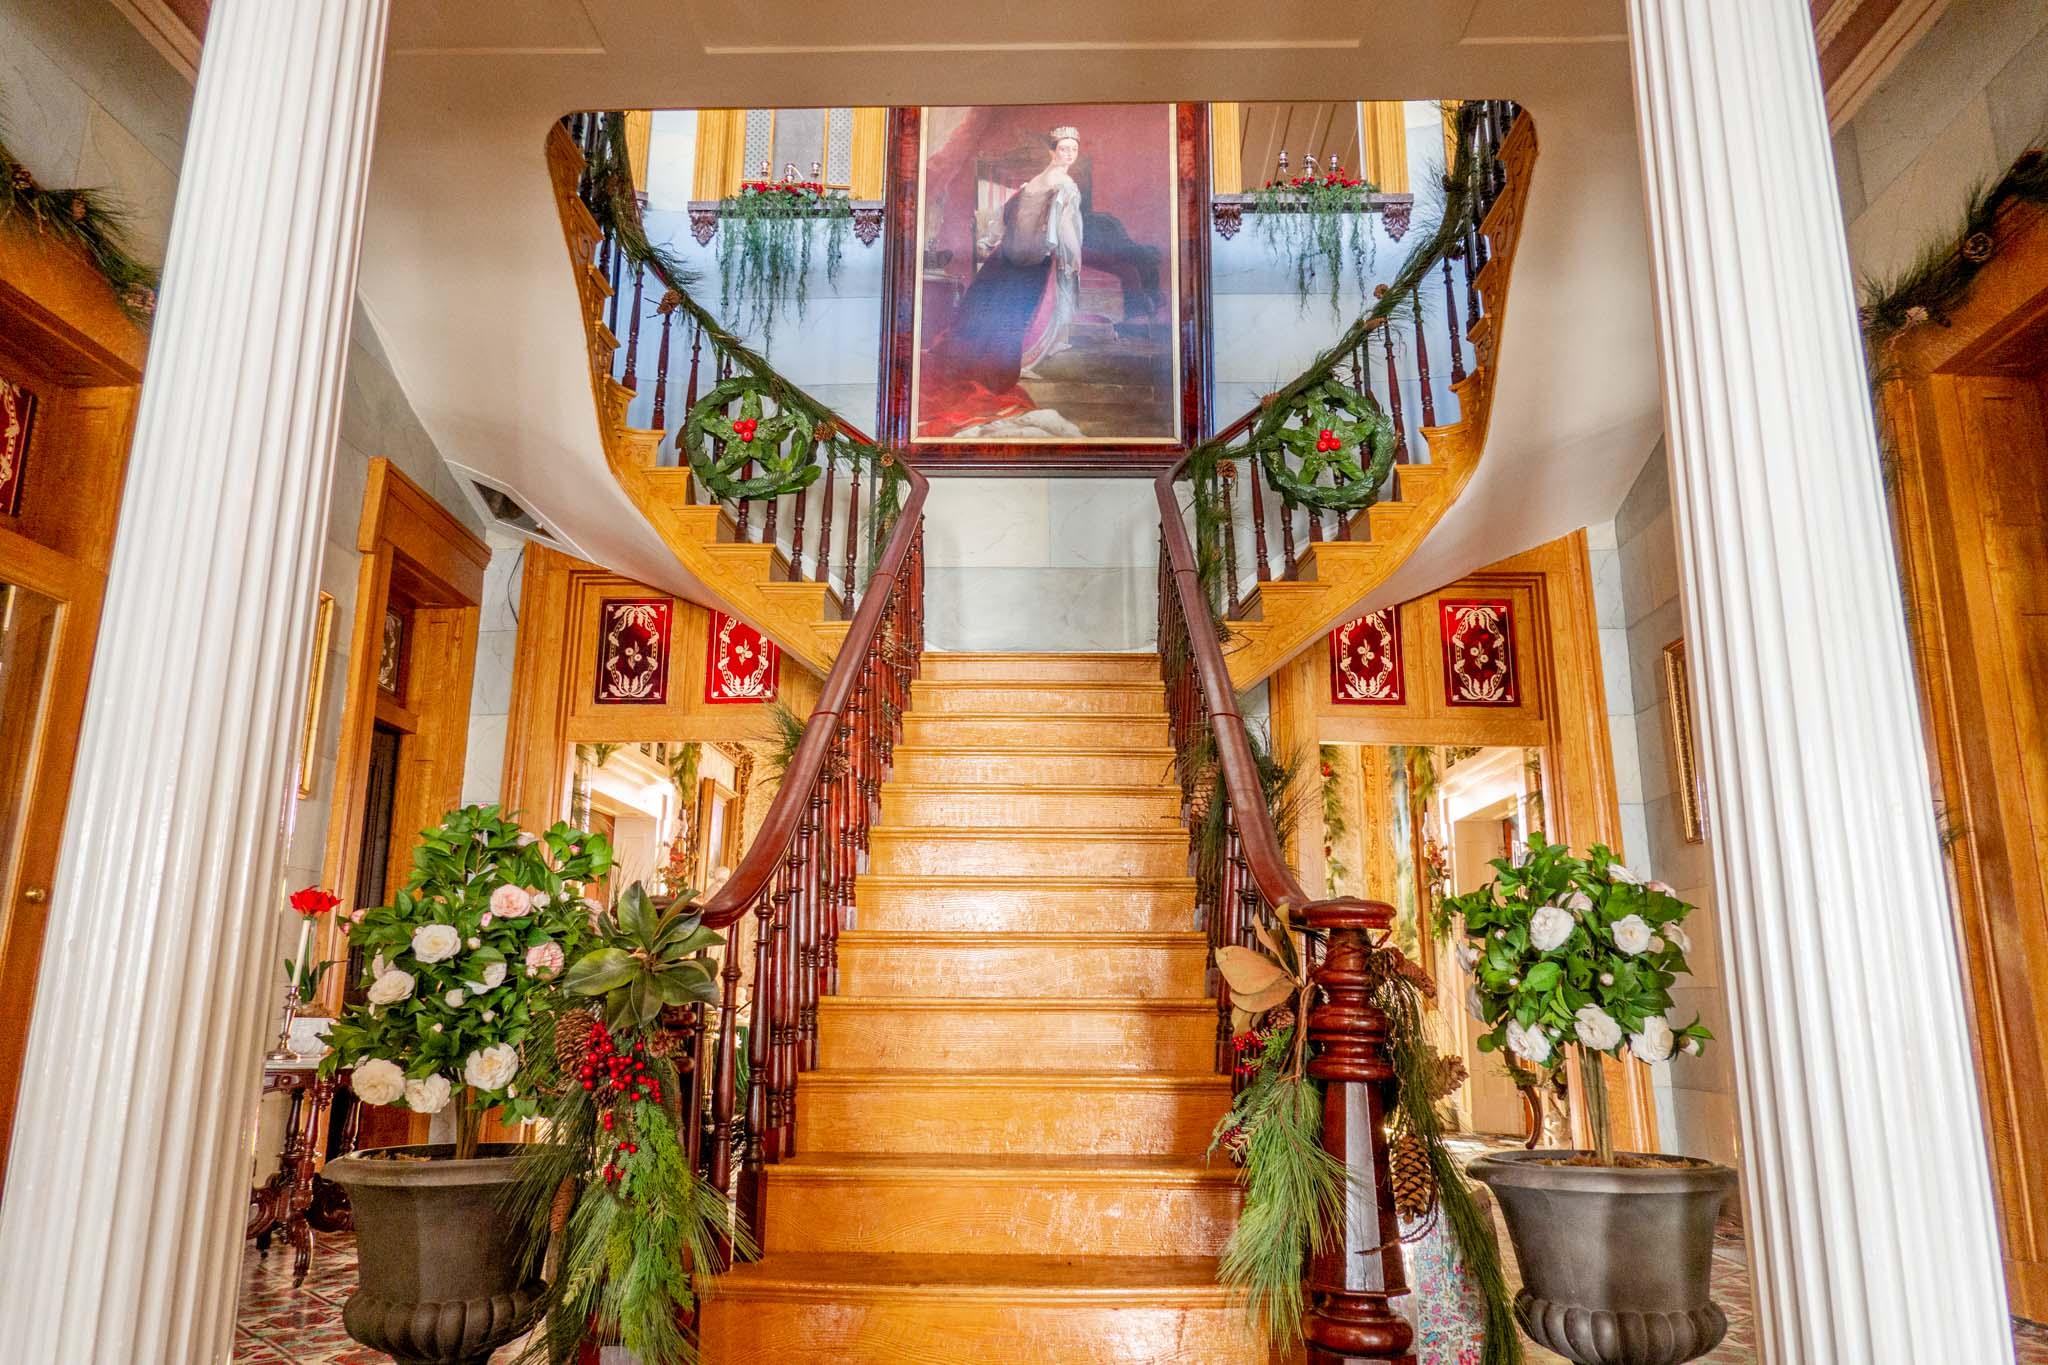 Large wooden staircase with a portrait at the top